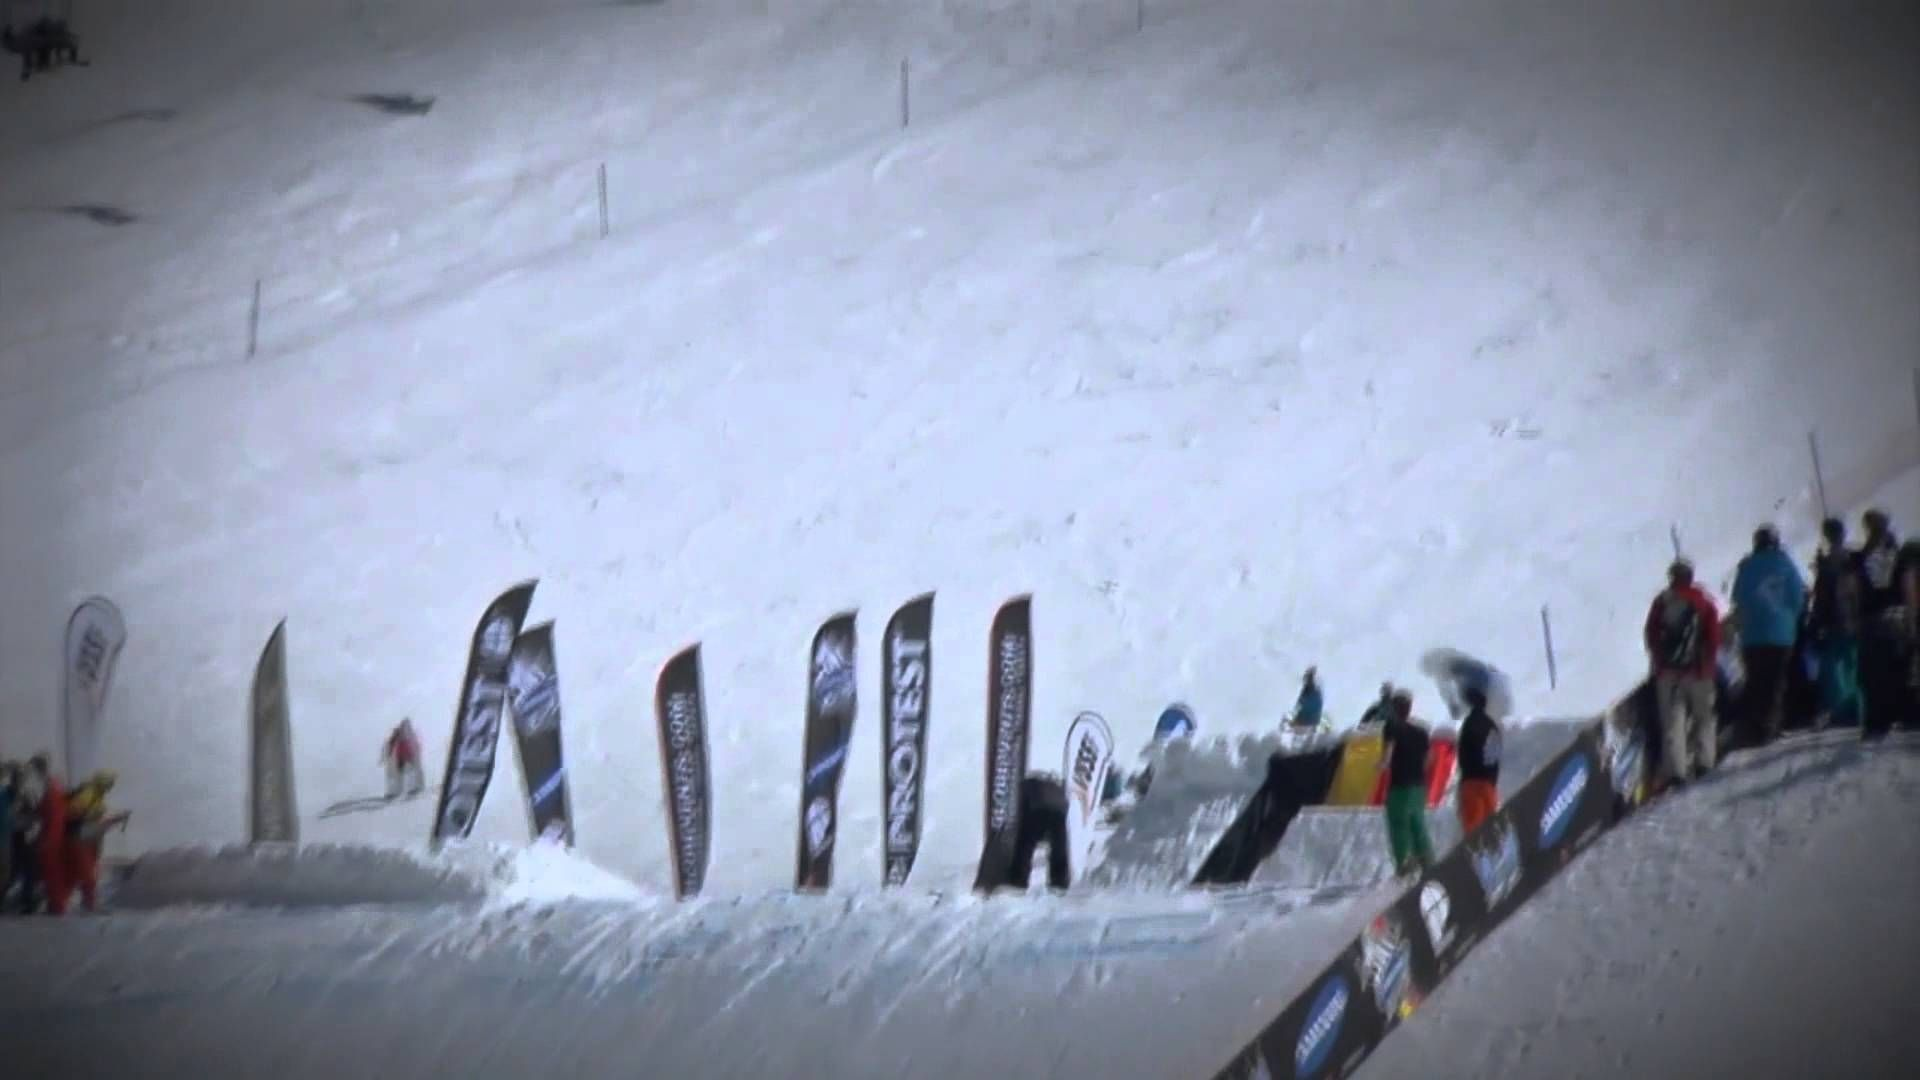 Biggest ski and snowboard jumps EVER done! (2012)